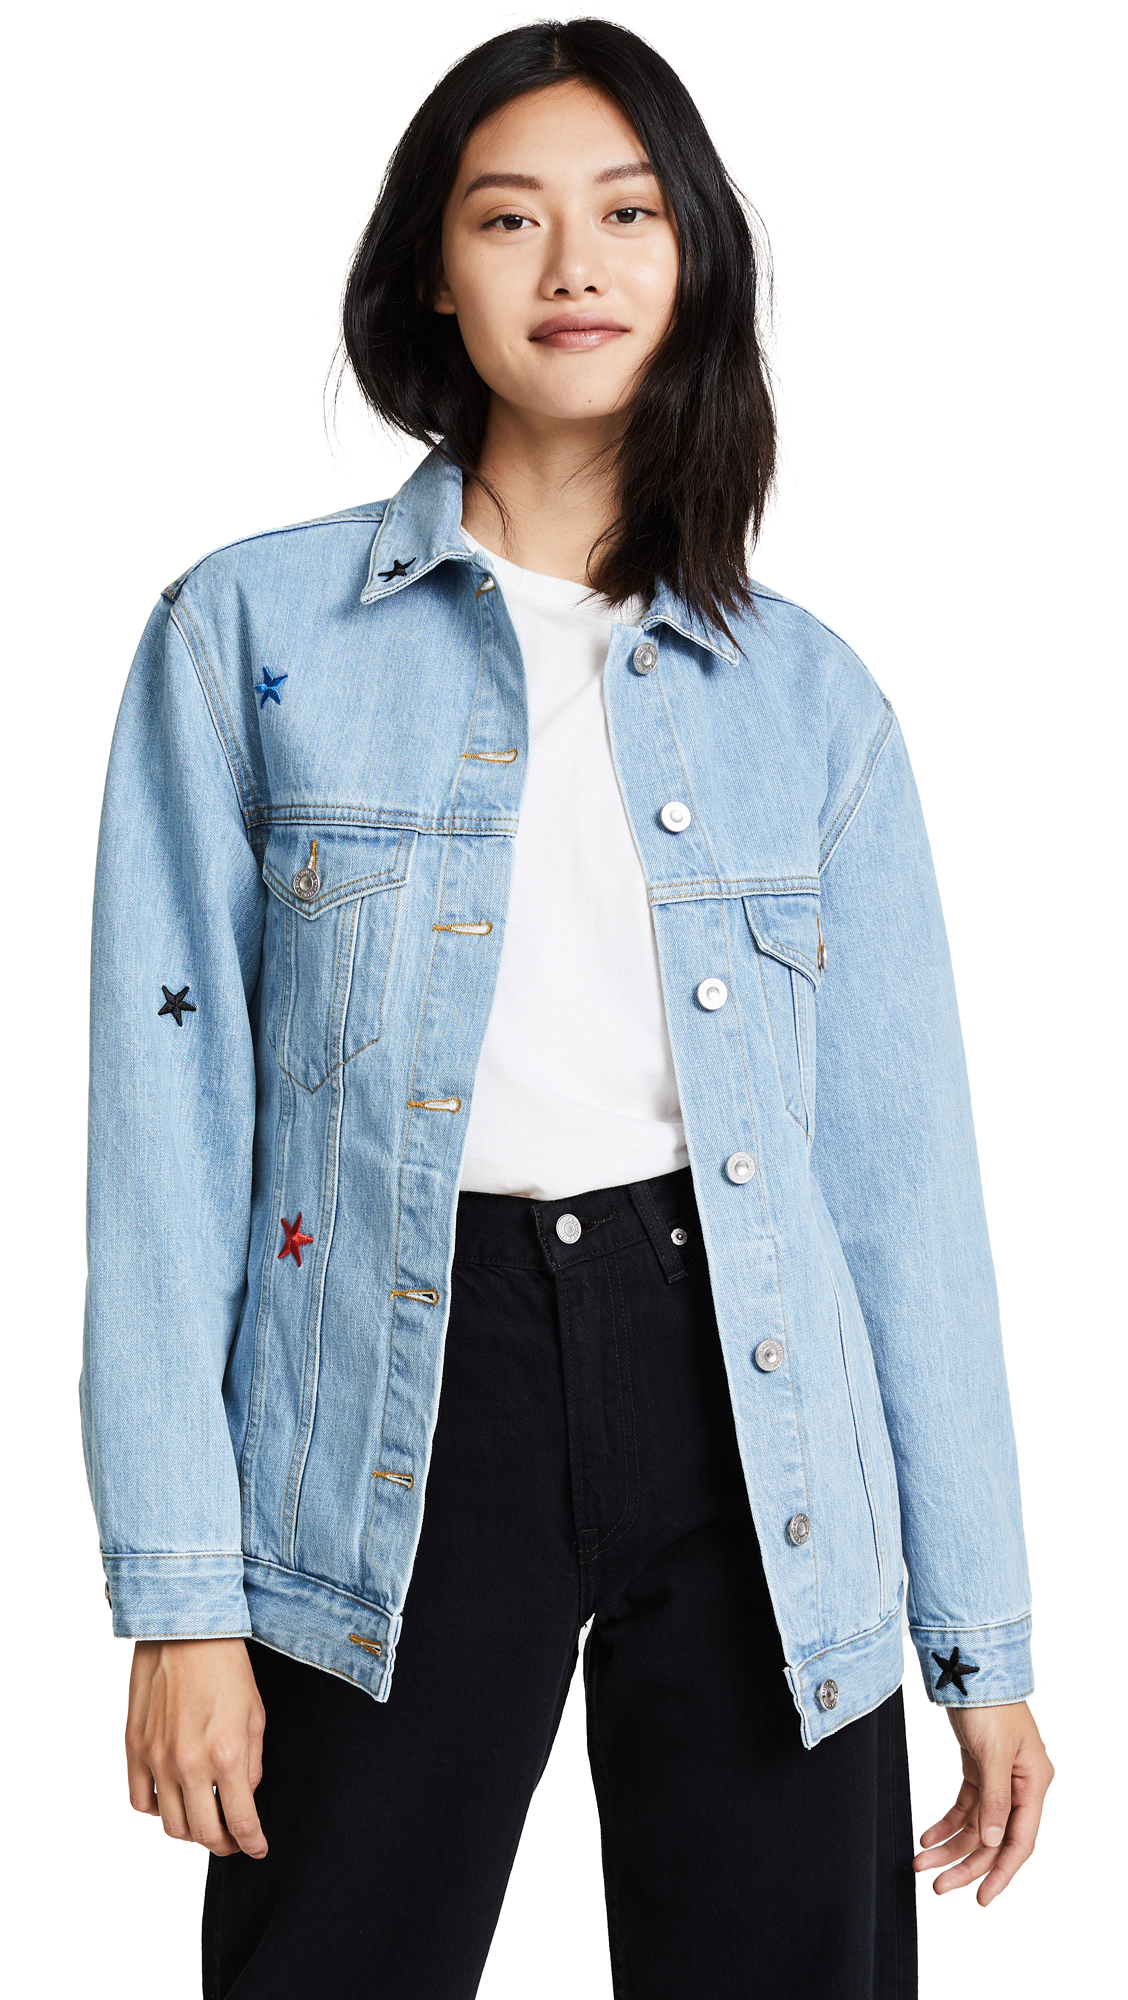 Etre Cecile Oversized Denim Jacket - Light Blue